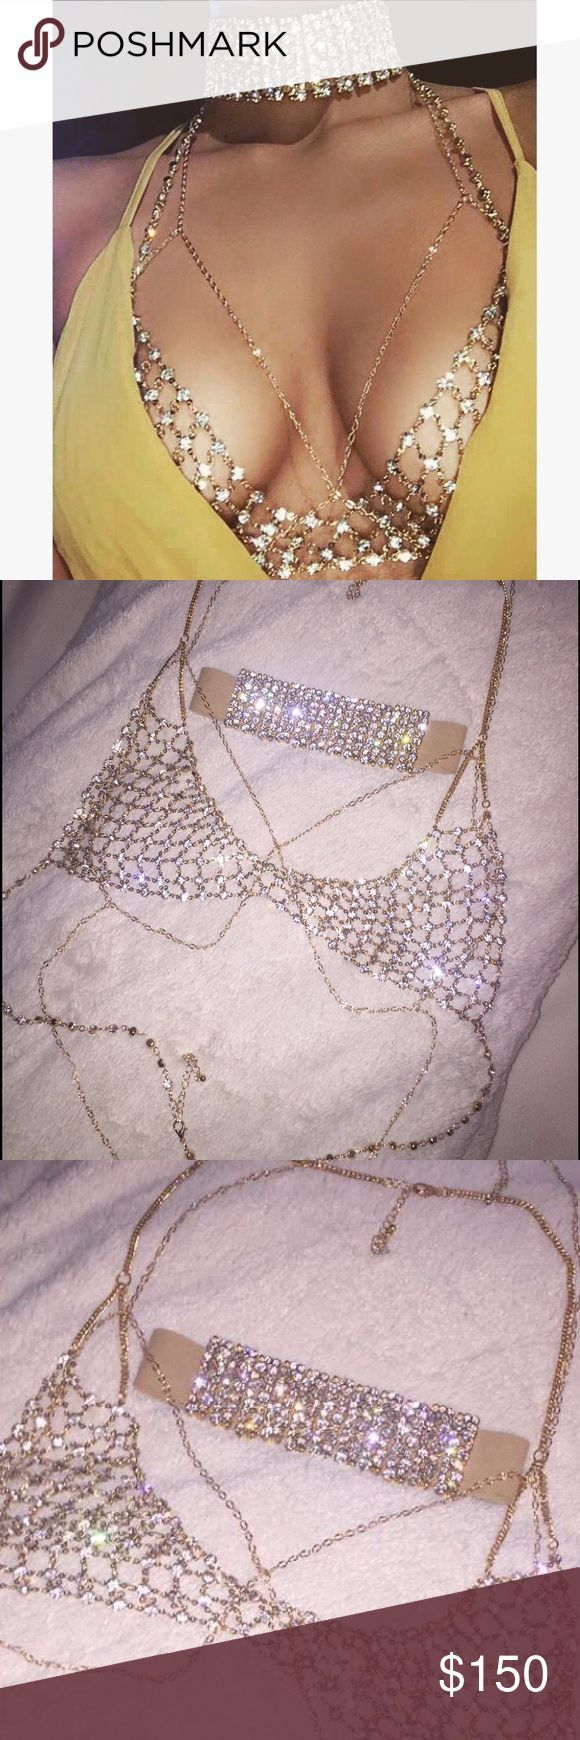 Diamond Choker and Bralette with body chain As seen on Desi Perkins. Will fit a small/ medium WINDSOR Intimates & Sleepwear Bras - lingerie bottoms, women's intimates, boutique lingerie *sponsored https://www.pinterest.com/lingerie_yes/ https://www.pinterest.com/explore/intimates/ https://www.pinterest.com/lingerie_yes/intimates/ http://www.barenecessities.com/Sexy-Lingerie_catalog_nxs,106.htm